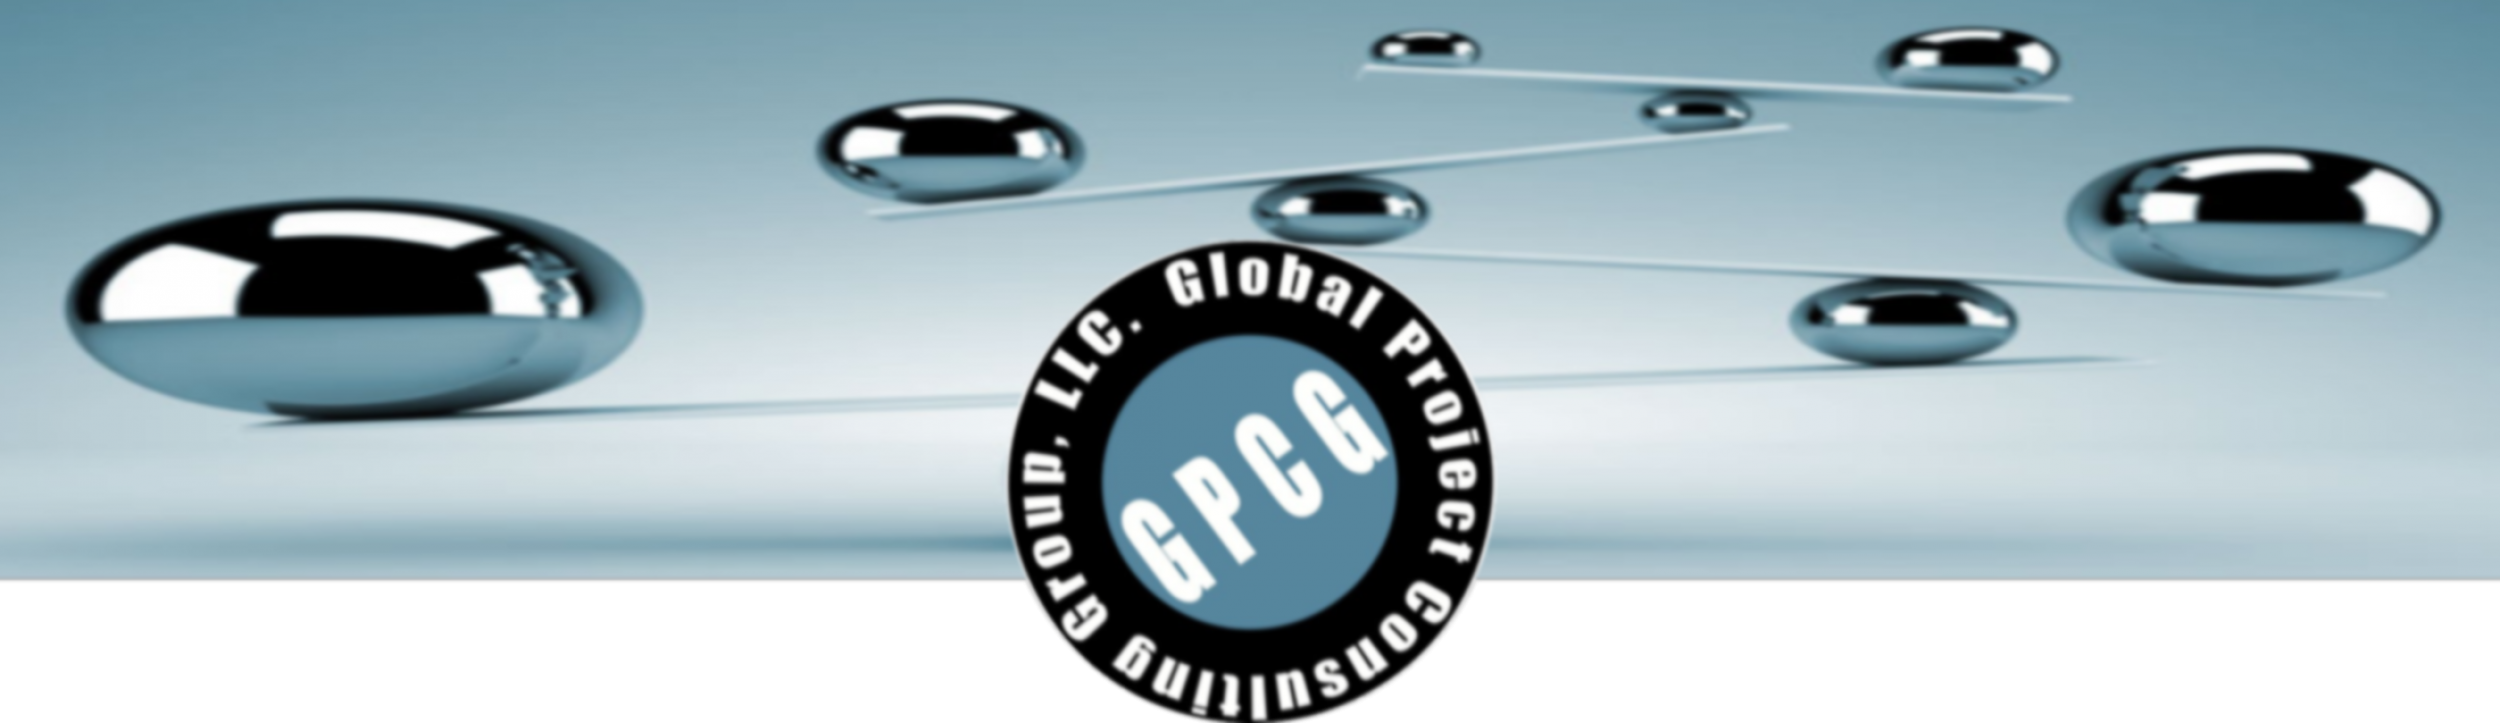 Global Project Consulting Group, LLC.